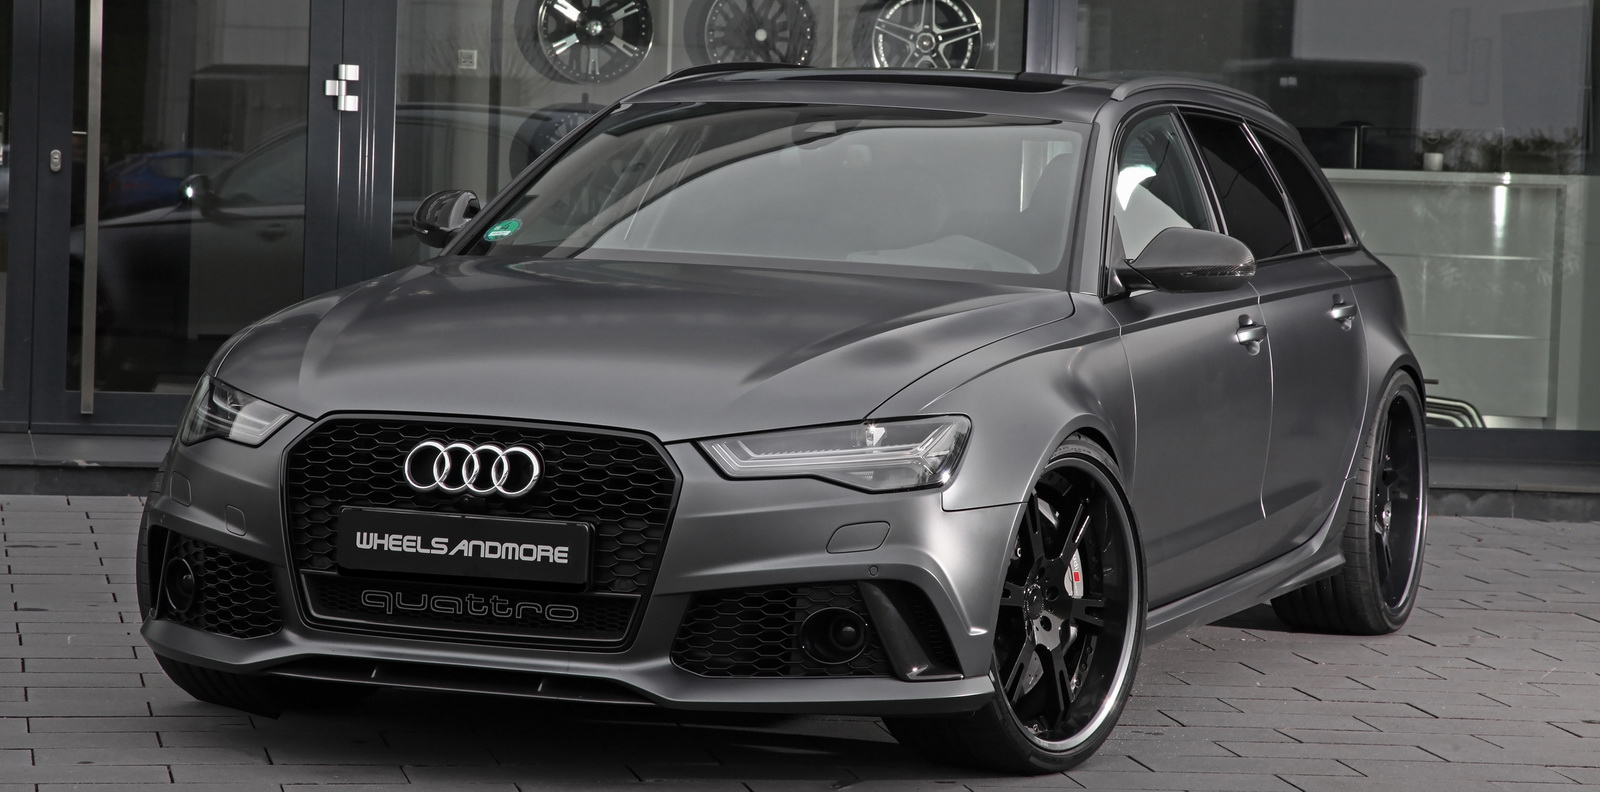 wheelsandmore-audi-rs6-tuning-2